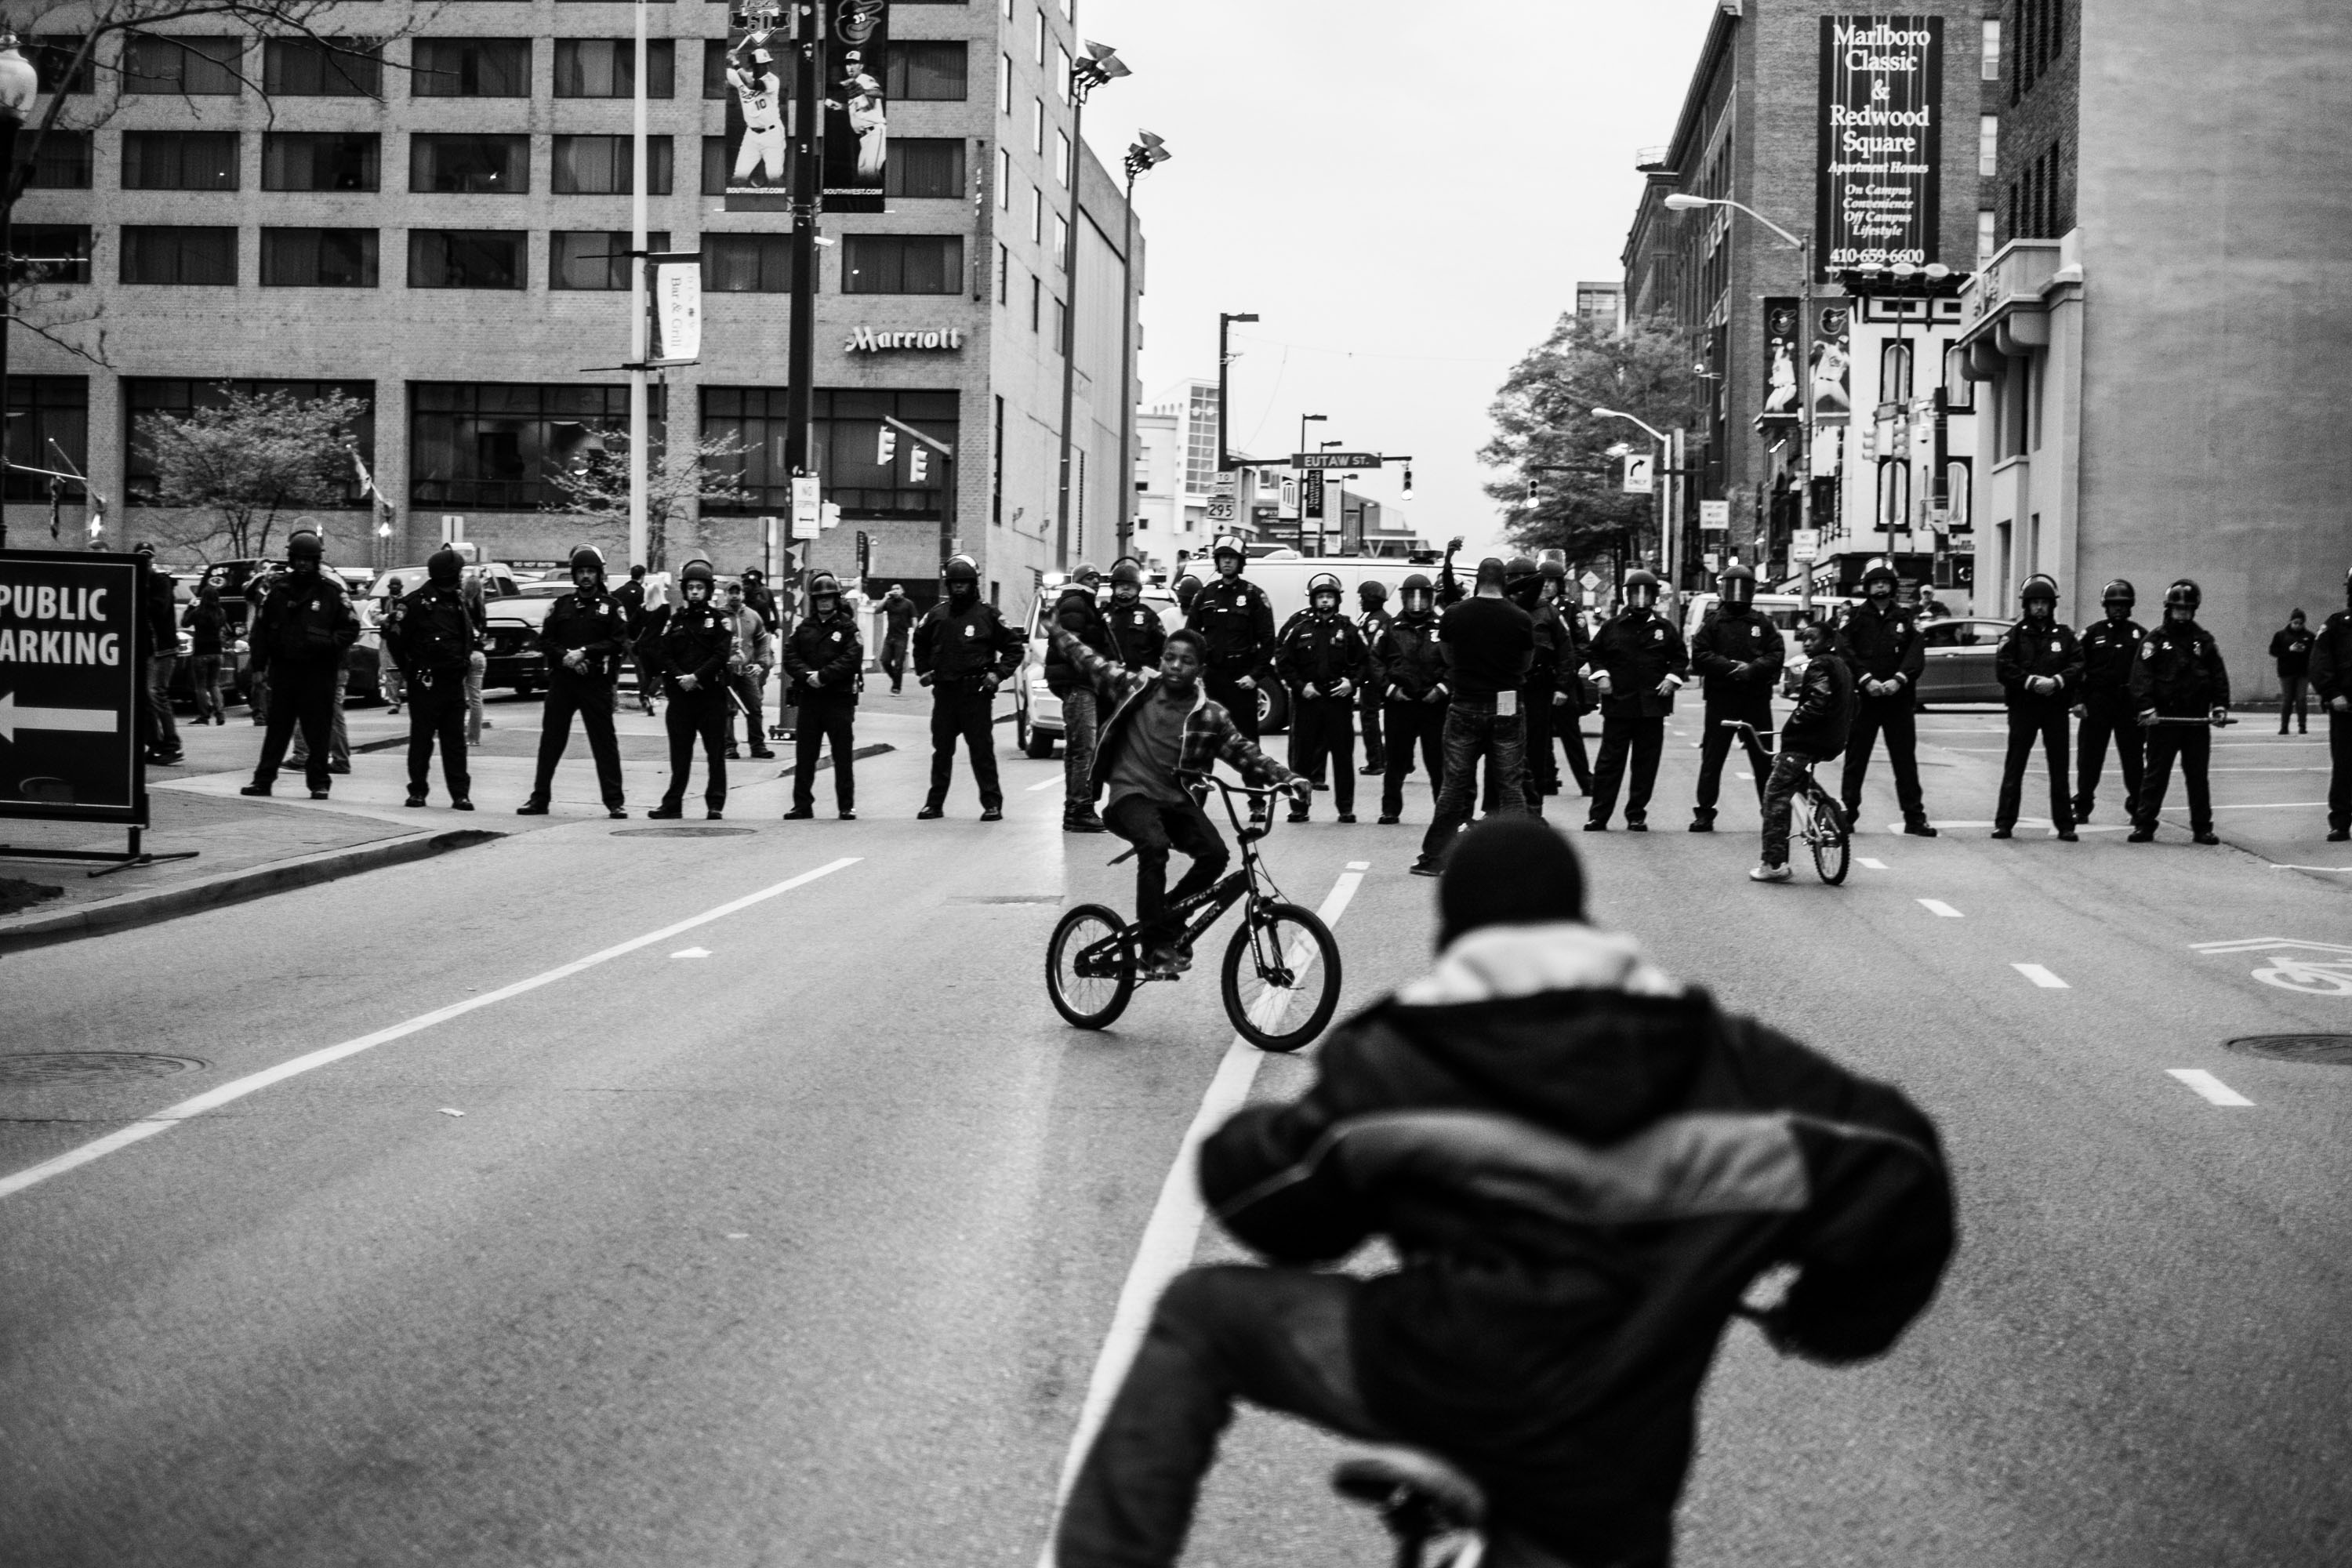 Children bike near a police barricade in downtown Baltimore during a May 2 protest.